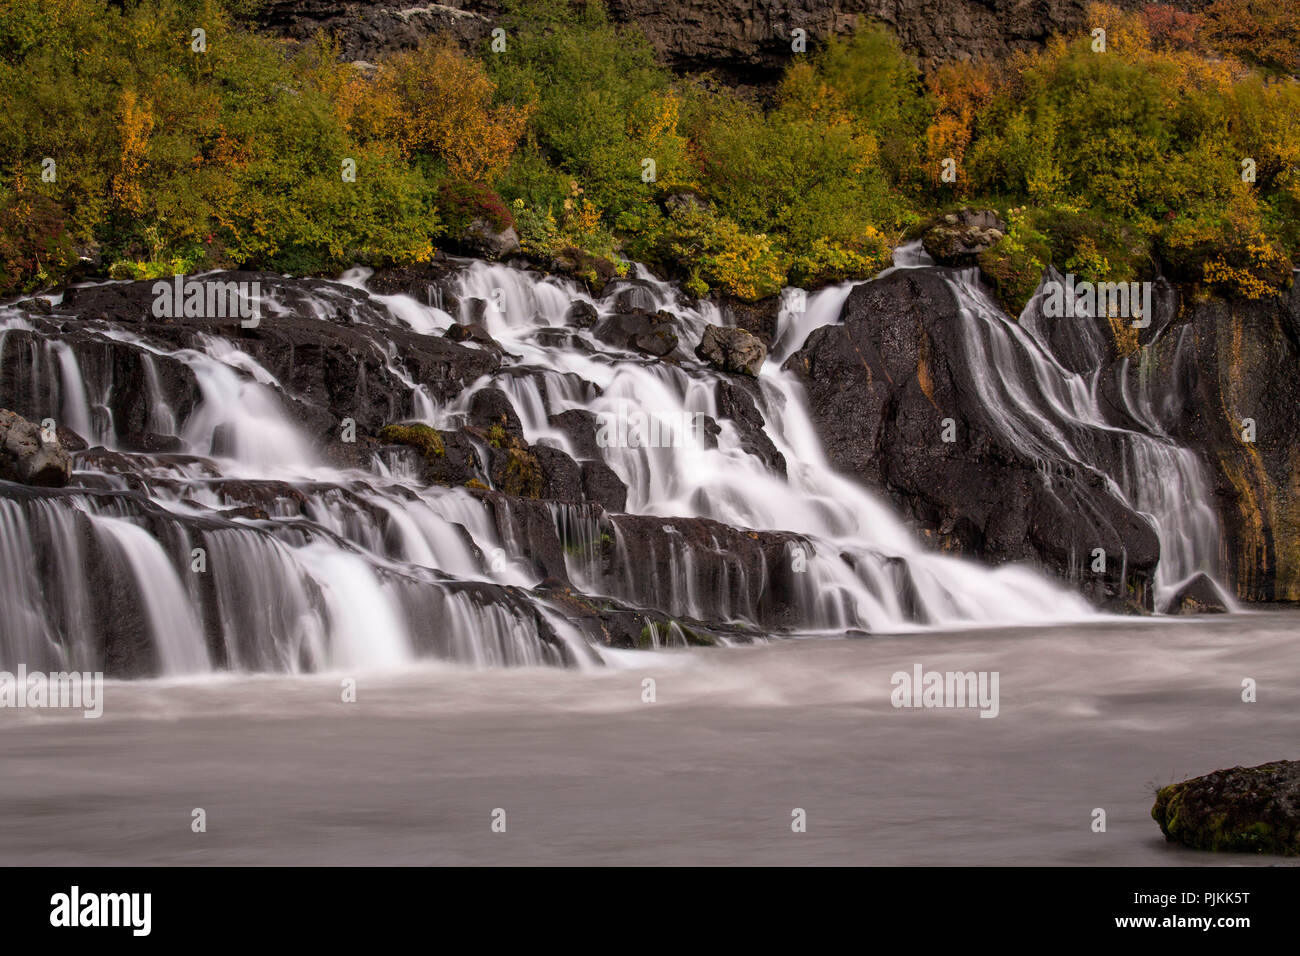 Iceland, Barnafoss, West Iceland, autumn colors, long exposure, rising from a crevice - Stock Image